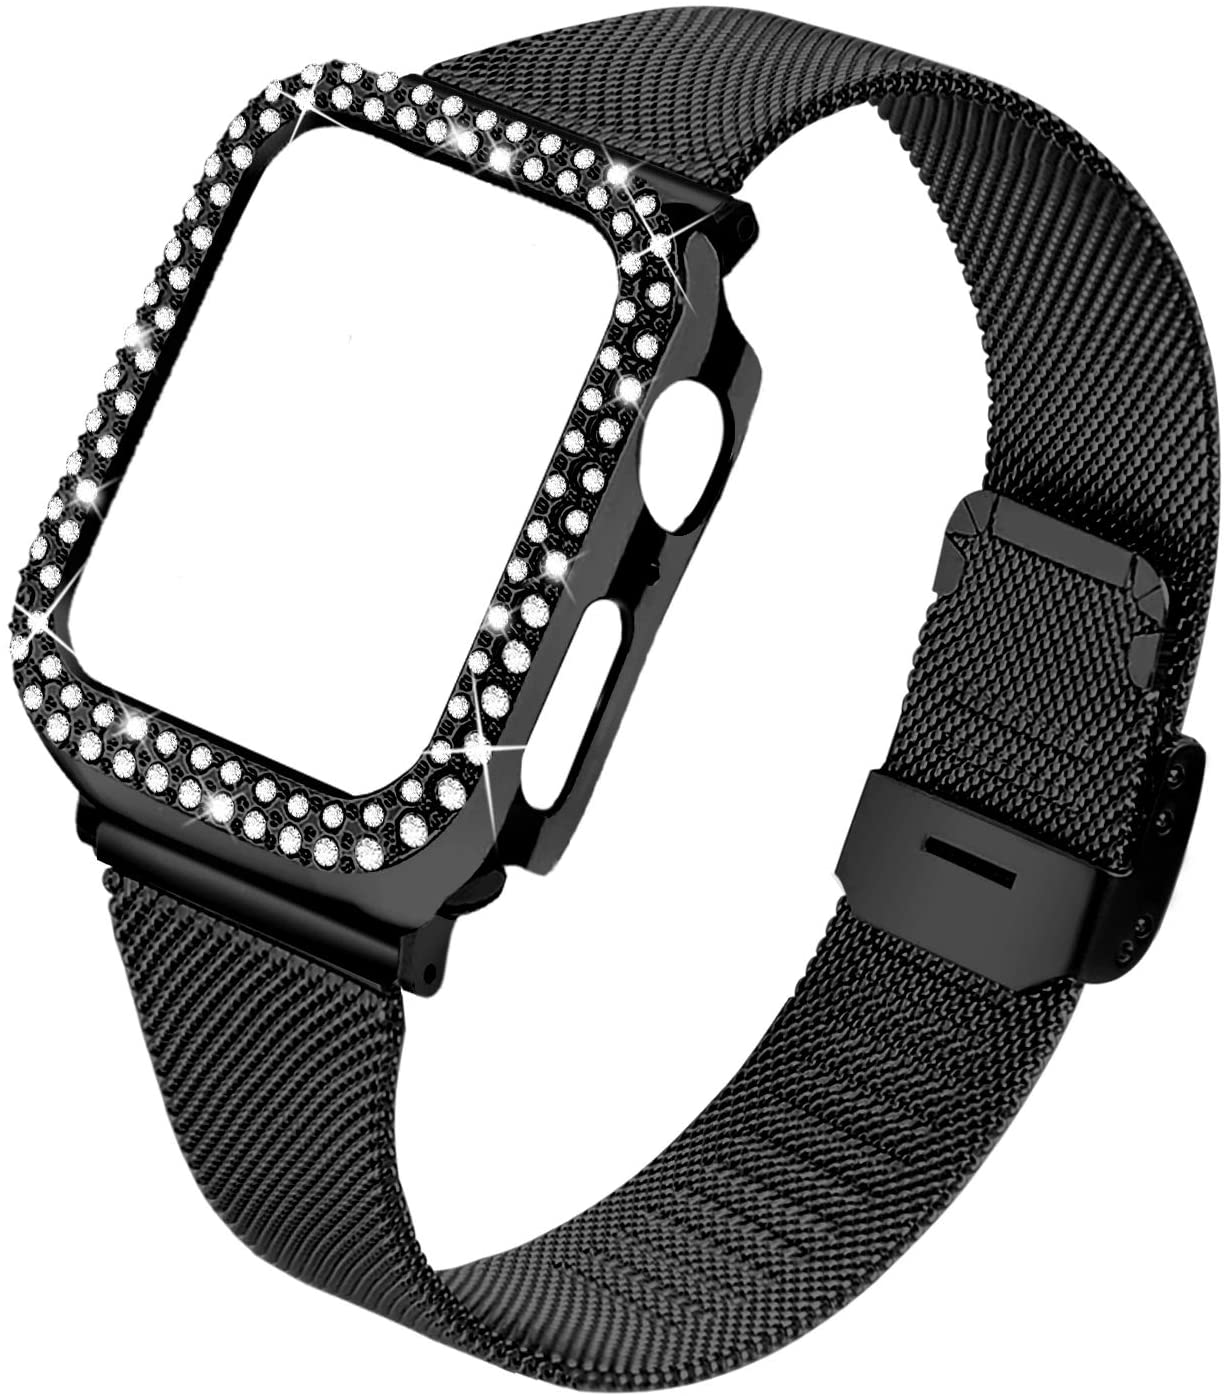 Joyozy Stainless Steel Mesh bands Compatible For Apple Watch 38mm,Women Bling Protective Crystal Diamond Case with Loop Mesh Strap For Apple watch Series 3/2/1(No Tool Needed)(Black, 38MM)